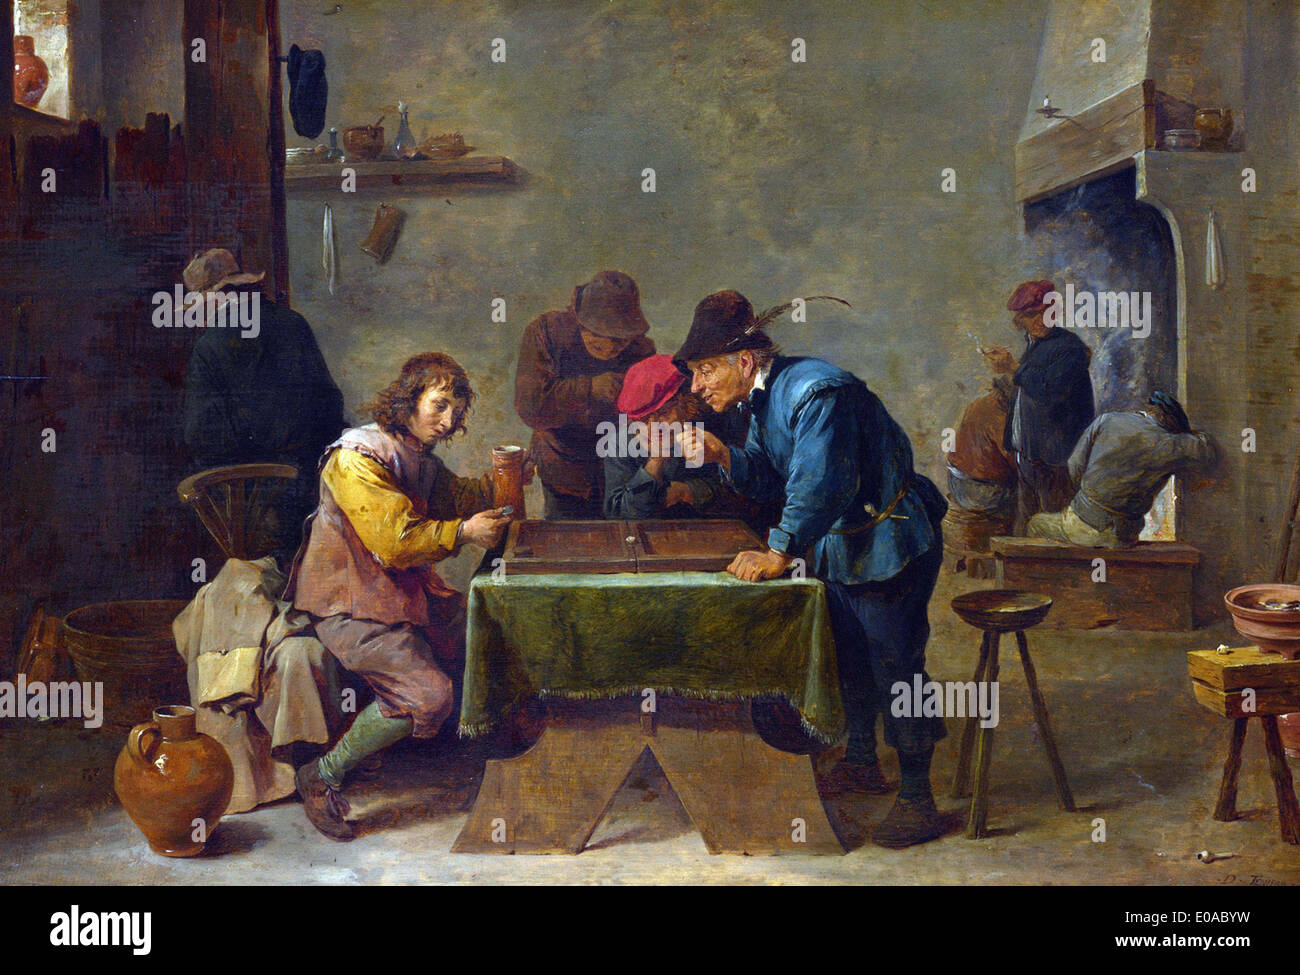 David Teniers the Younger Backgammon Players - Stock Image